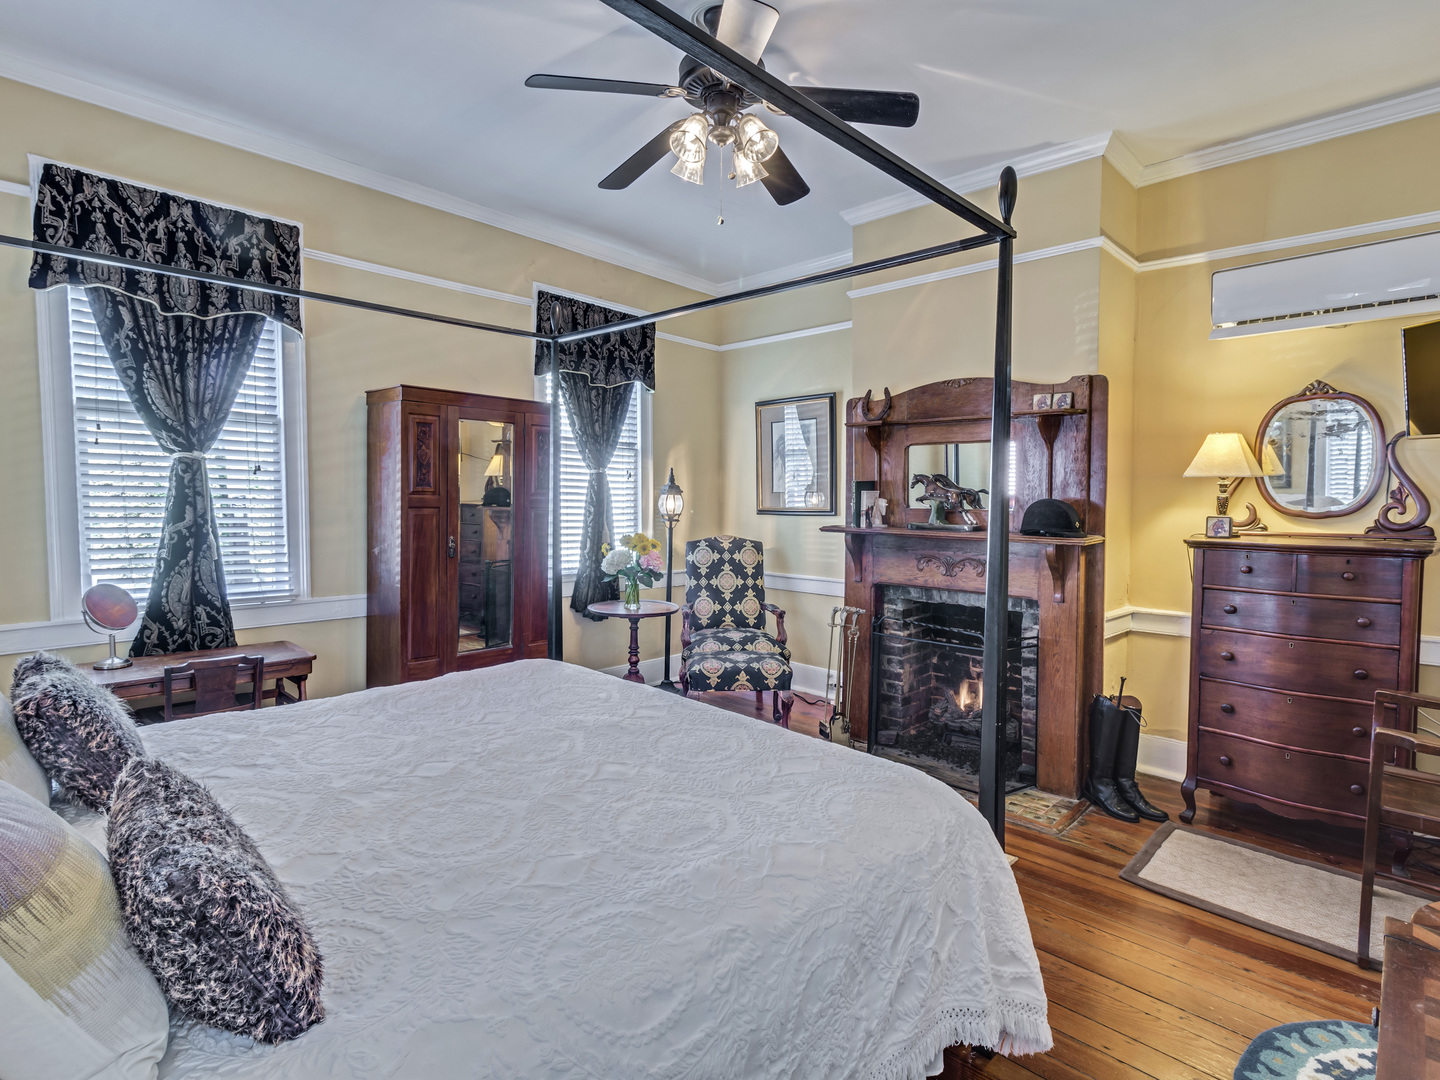 A bedroom with a bed in a room at Palmers Pinckney Inn.